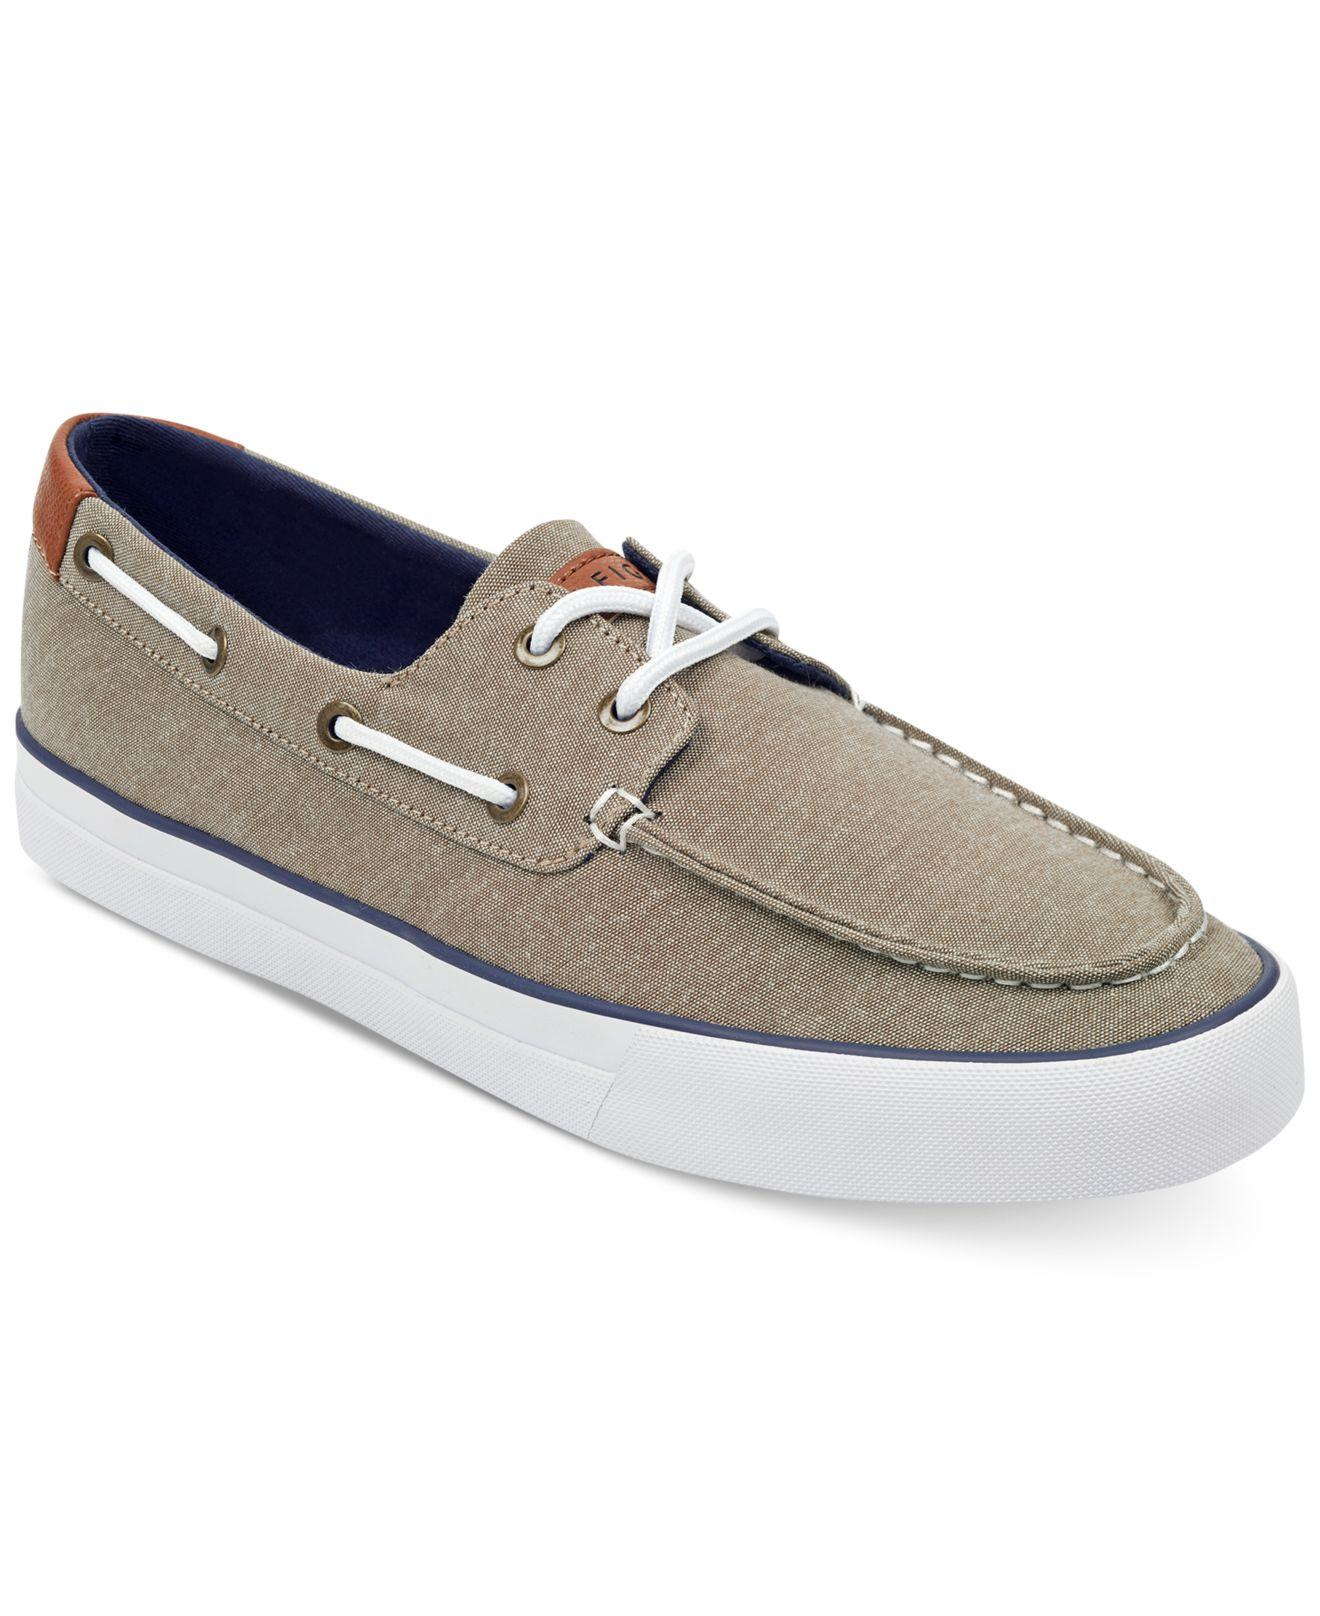 db15c3daa1e932 Tommy Hilfiger. Men s Natural Petes Boat Shoes.  60 From Macy s